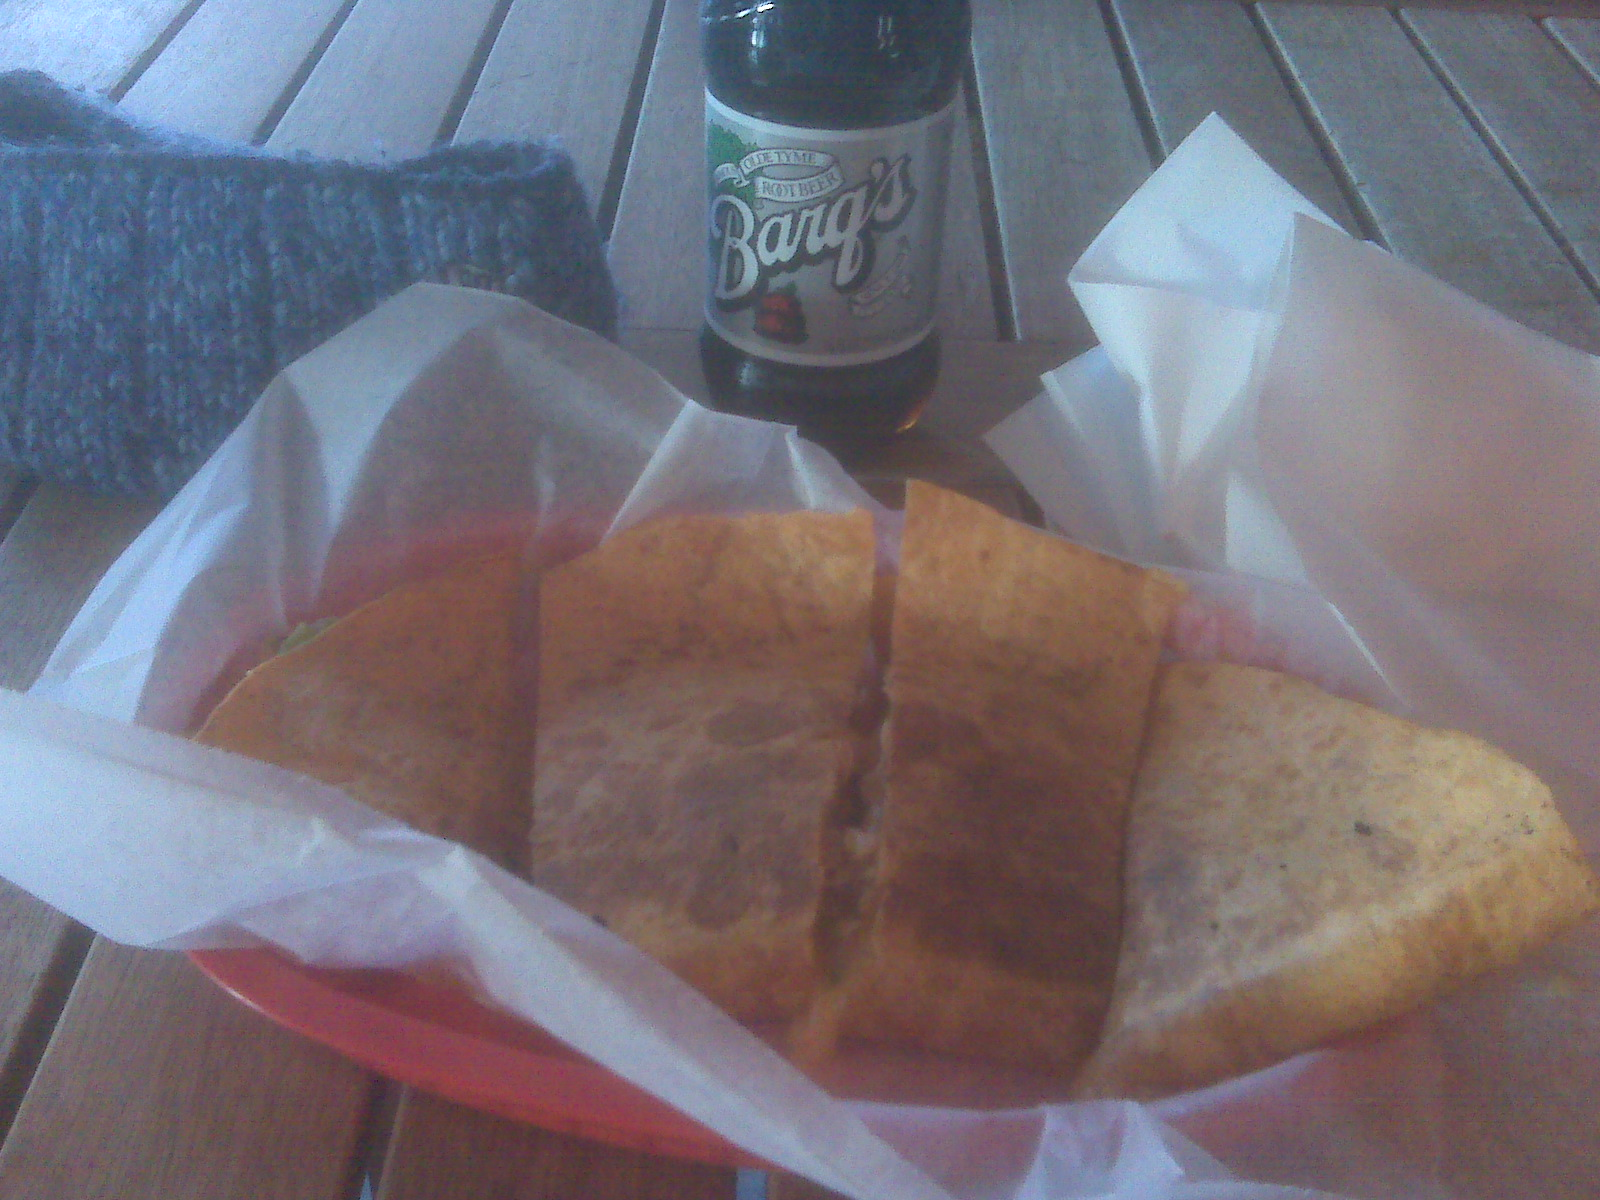 armadillos keene nh :: Chicken quesadilla with guacamole mixed in.  barq's root beer